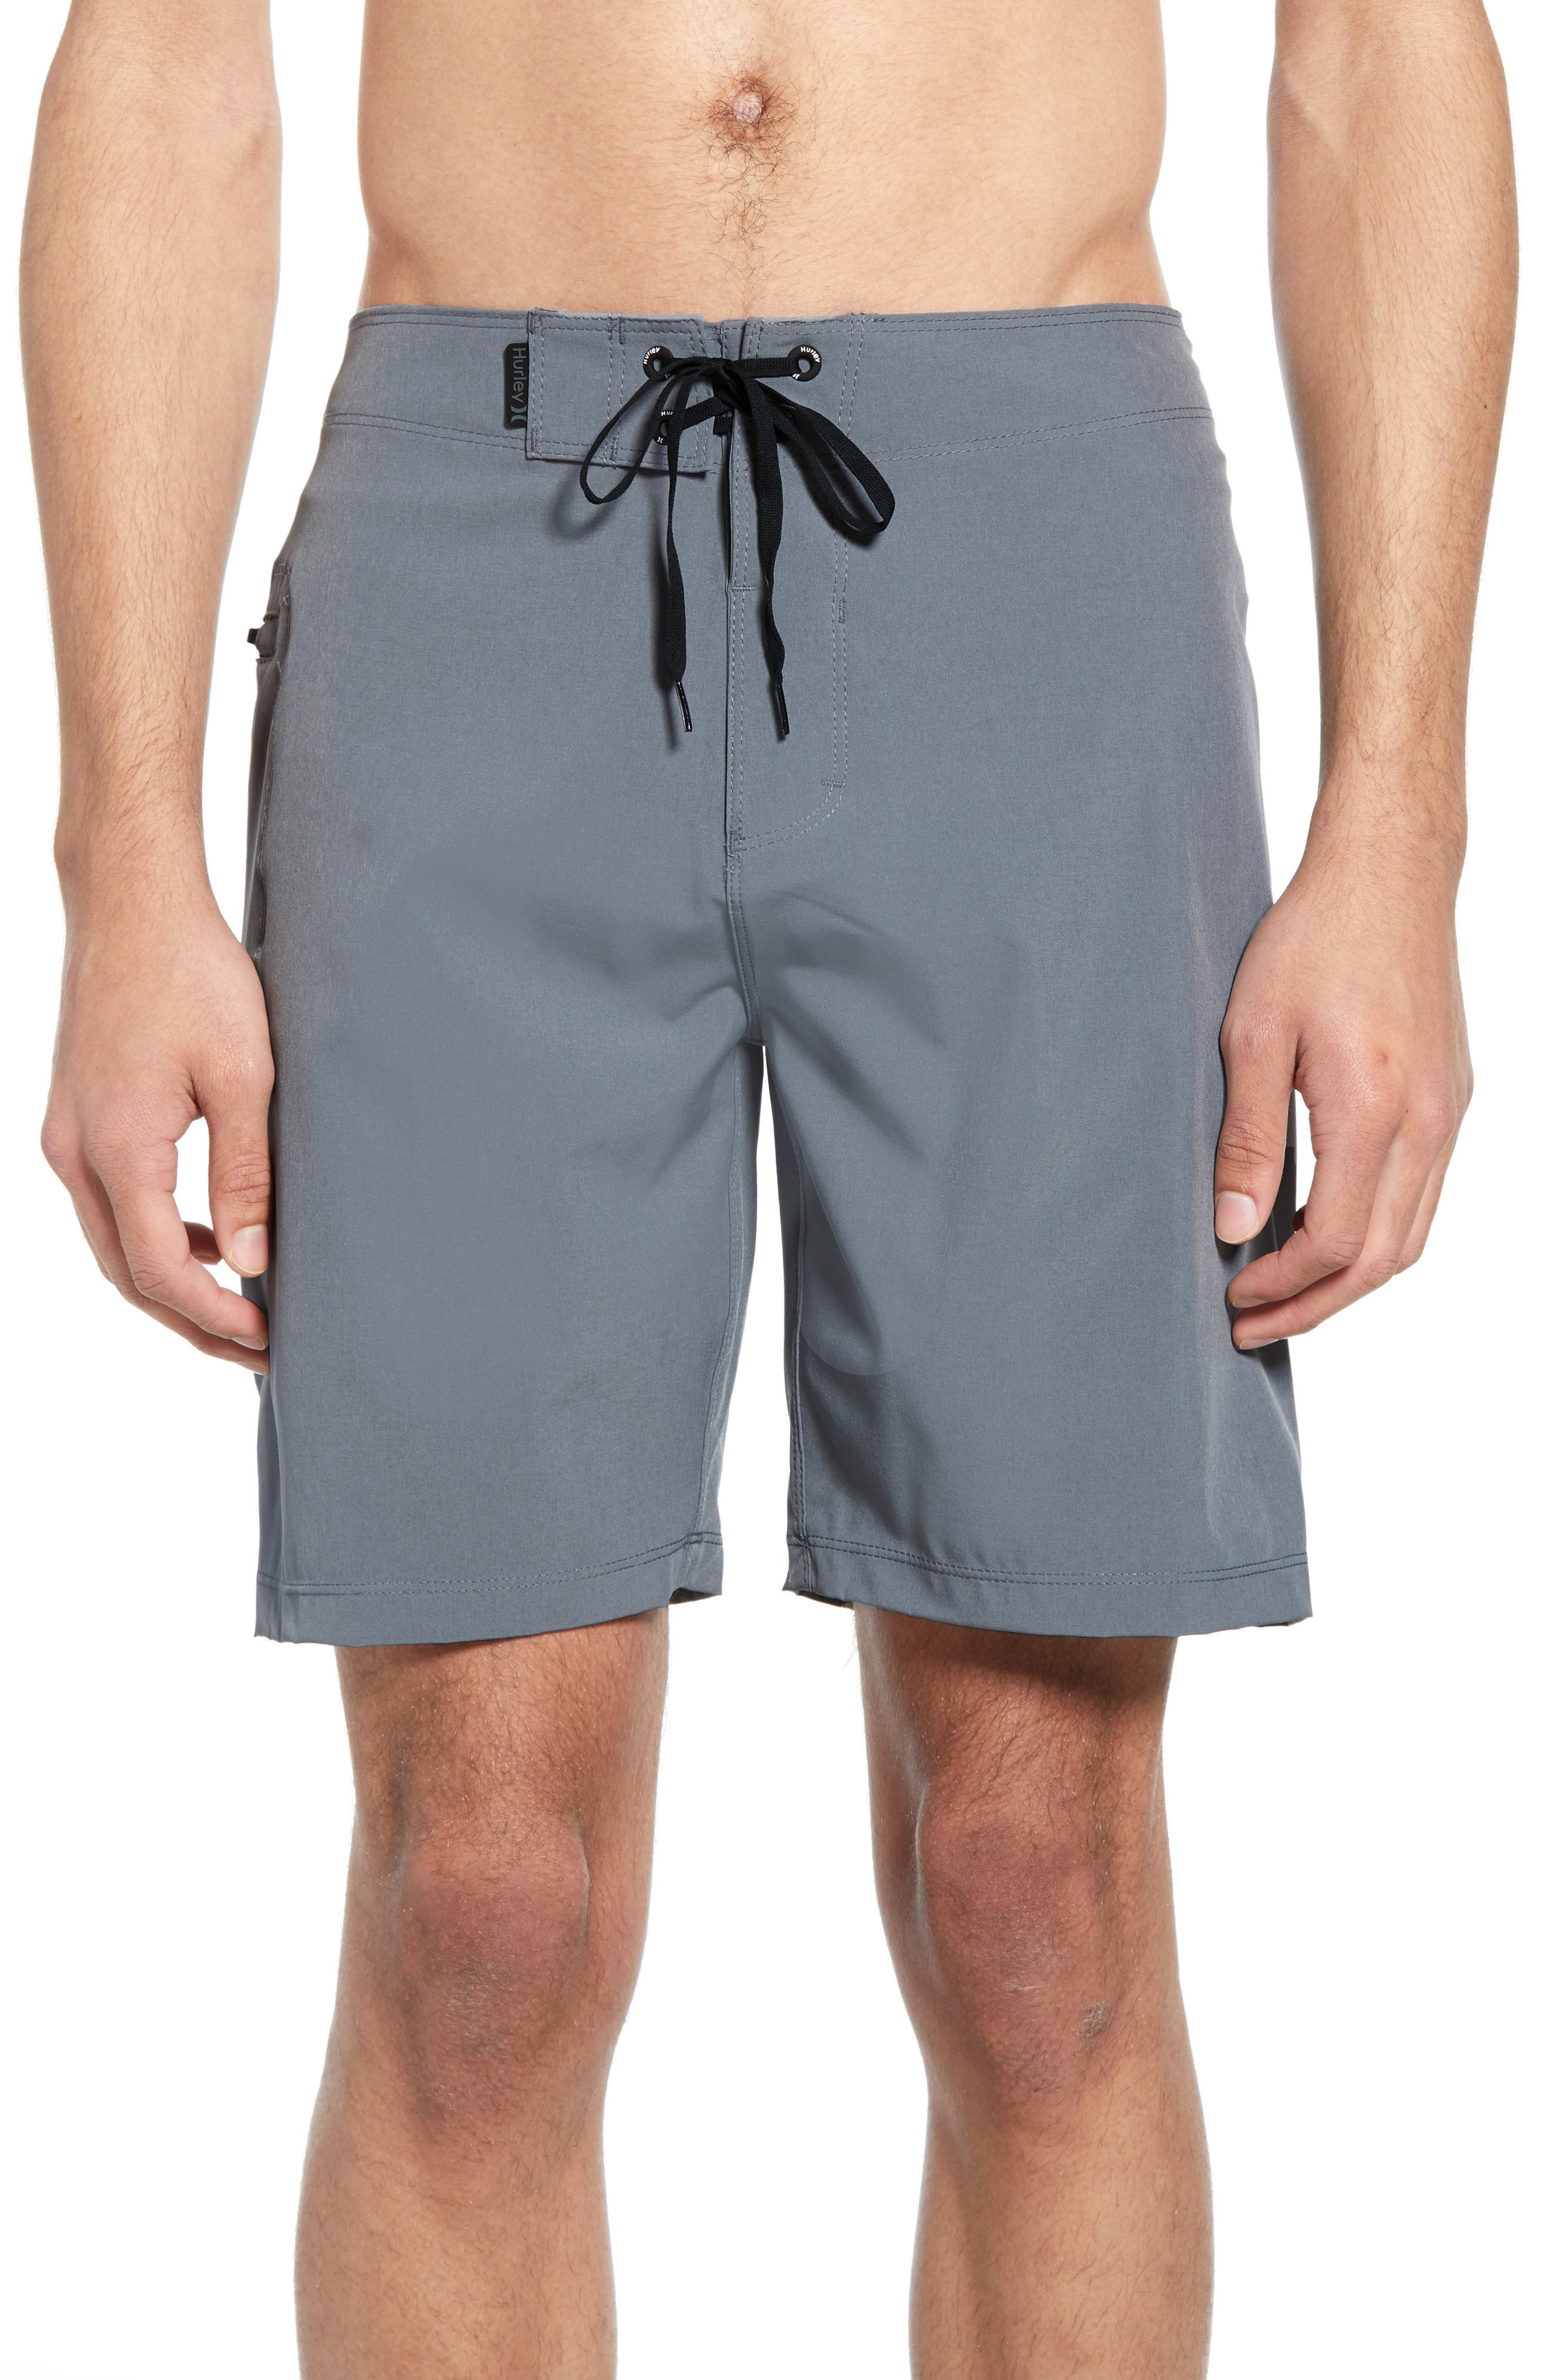 HURLEY Phantom One & Only Board Shorts, Main, color, COOL GREY